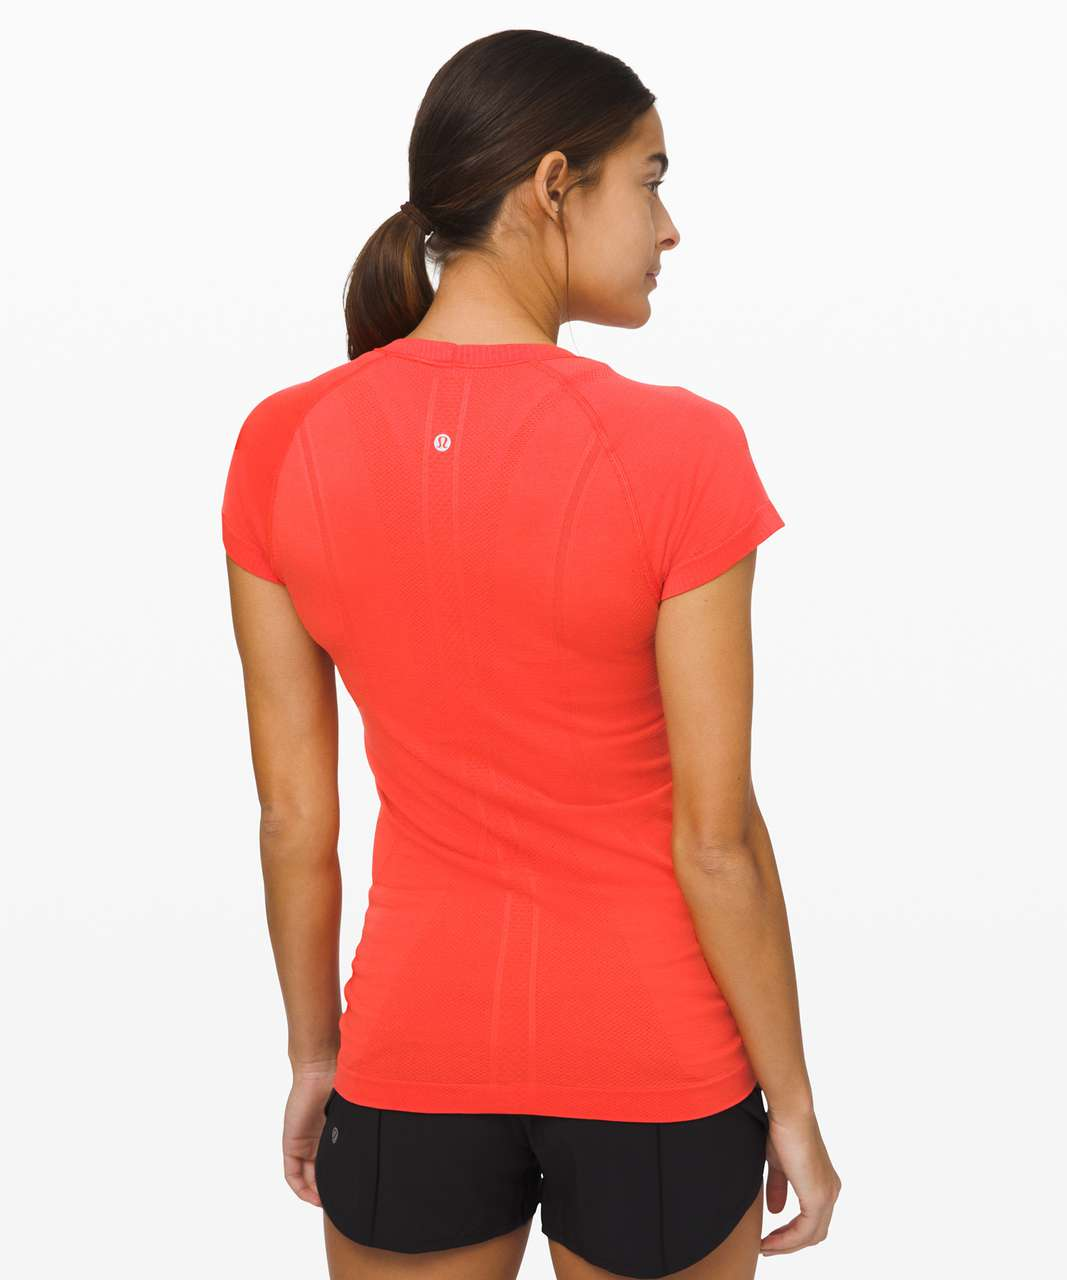 Lululemon Swiftly Tech Short Sleeve Crew - Thermal Red / Thermal Red